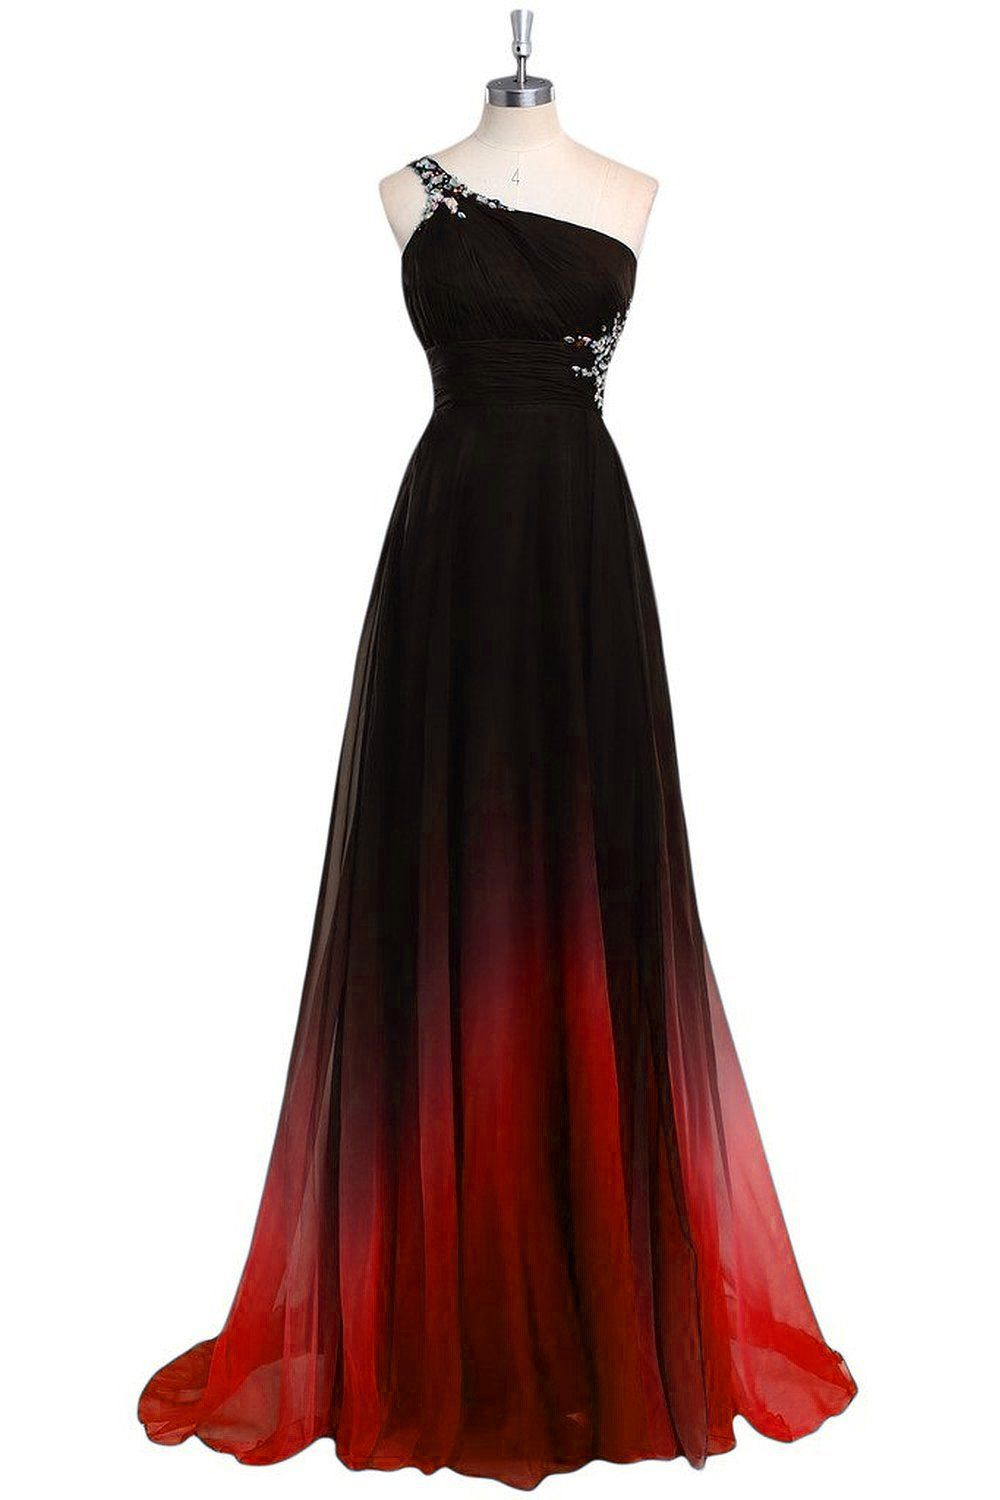 Women S Gradient Color Beading Evening Party Gowns Red Black Sequins Formal Prom Dresses Long A1 Evening Dress Beaded One Shoulder Prom Dress Prom Dresses Long